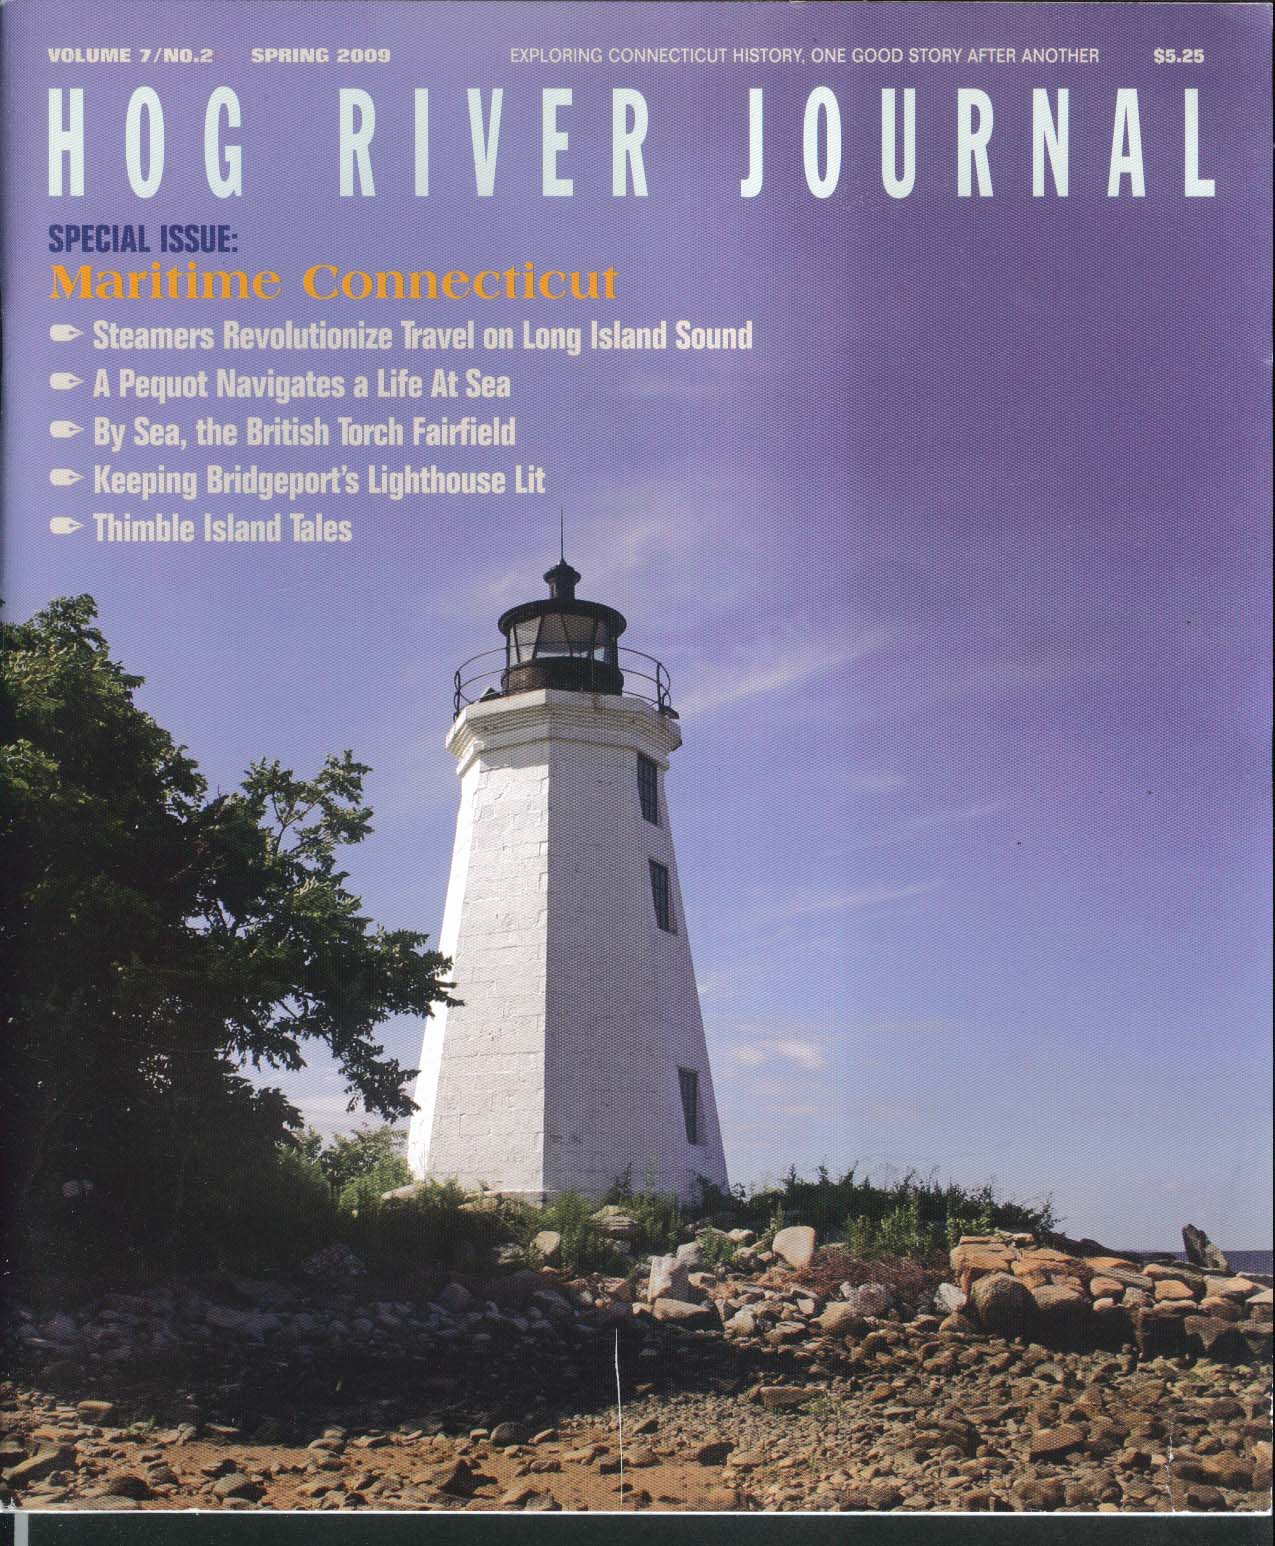 HOG RIVER JOURNAL V7 #2 George Comer New London Jibboom Club + Spring 2009